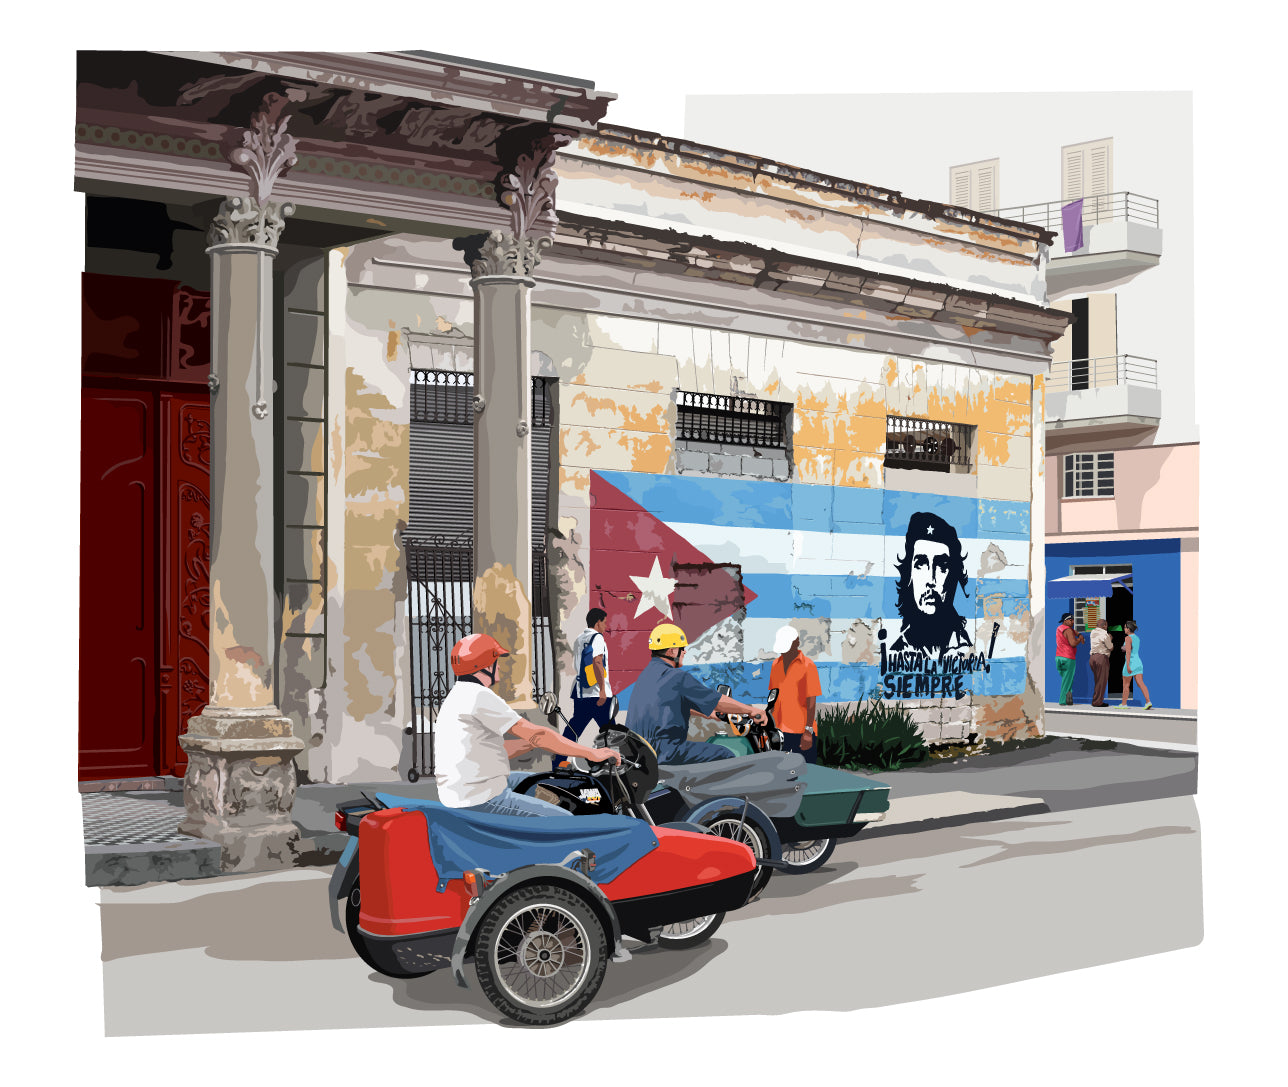 Havana,street with images of Ché